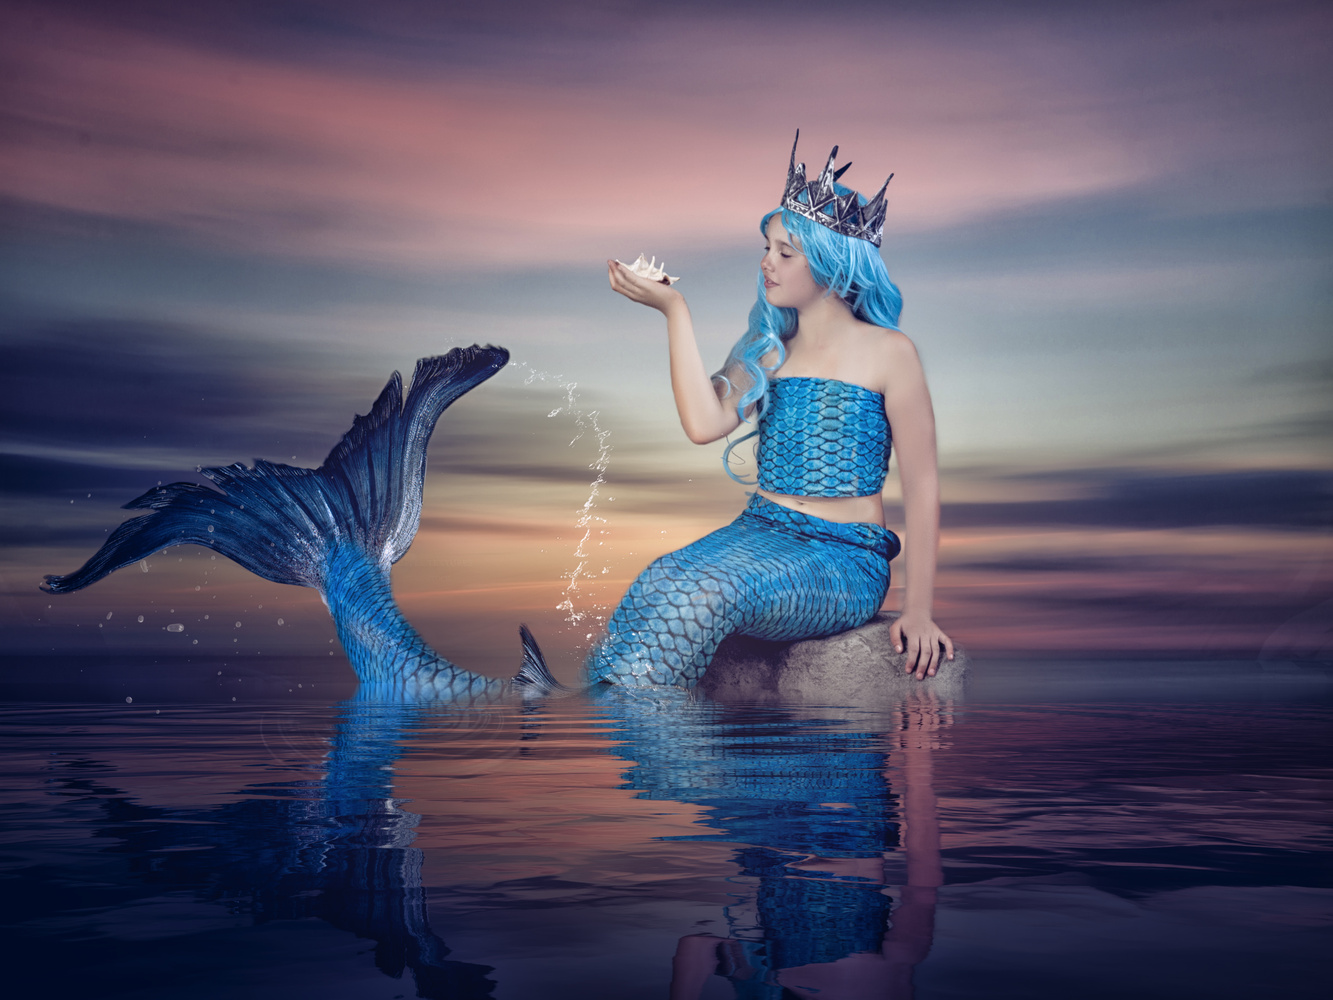 The little mermaid by Michelle Goodall